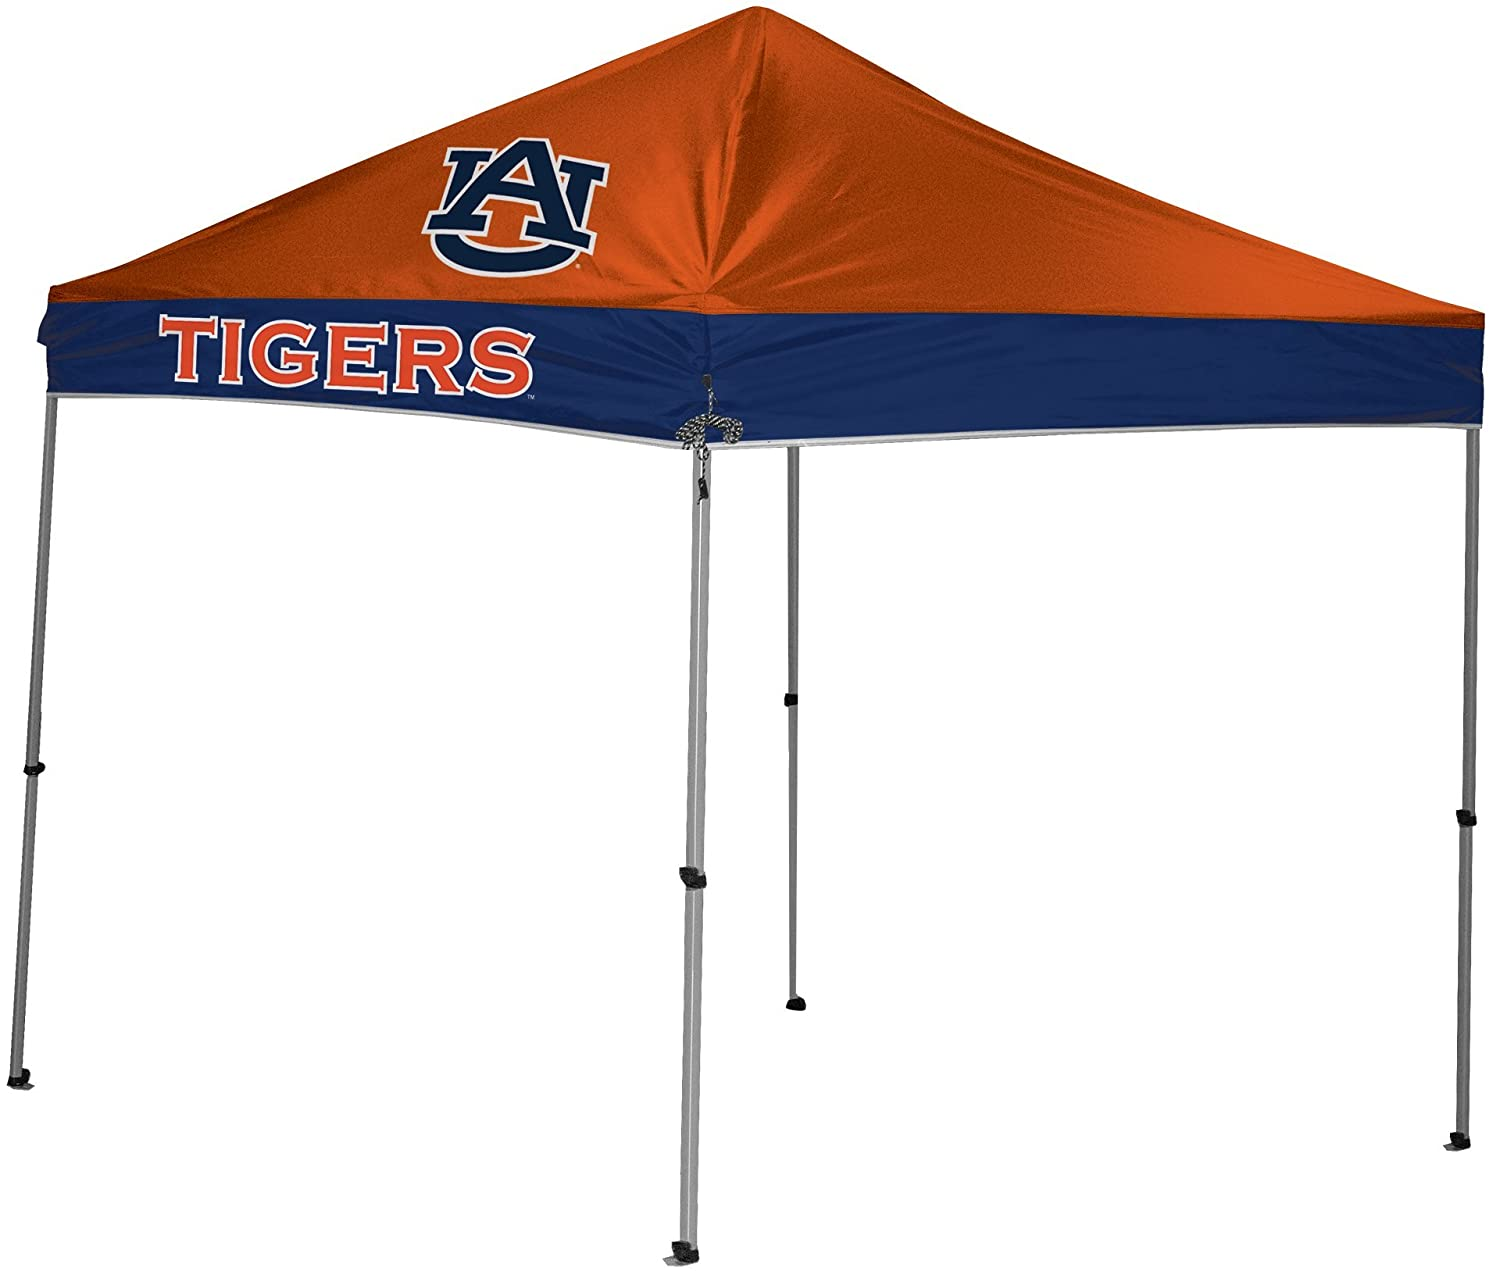 NCAA Instant Pop-Up Canopy Tent with Carrying Case, 9x9